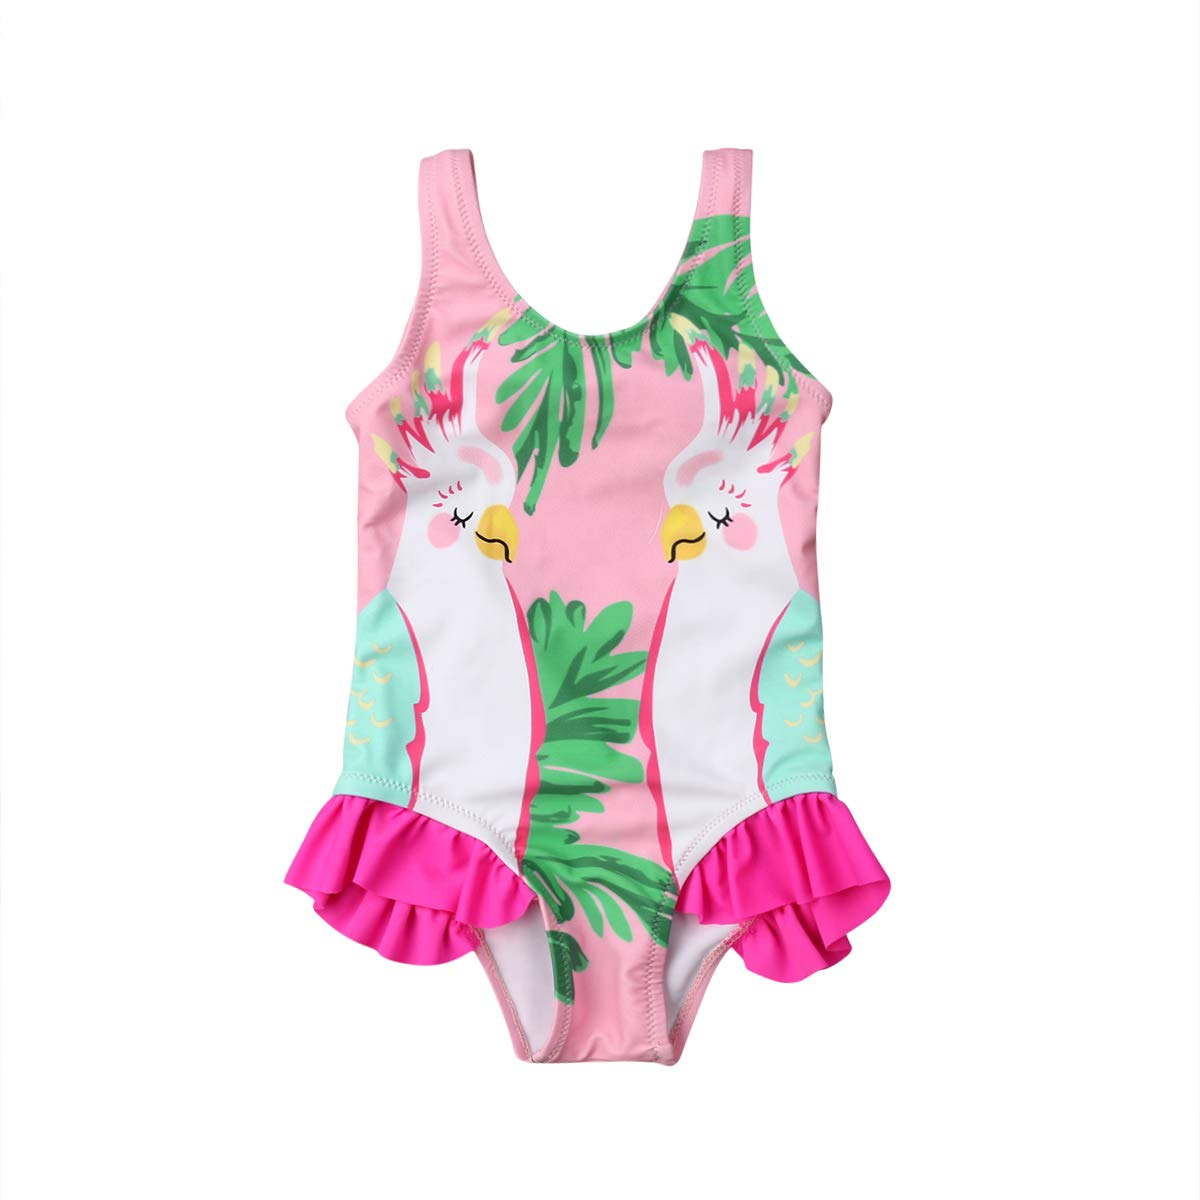 32004ed8a79a2 Amazon.com: Infant Baby Girl Swimsuit Cute Flamingo Swimwear Floral Pink Bathing  Suit One Piece Bikini Beach Wear for Toddler: Clothing